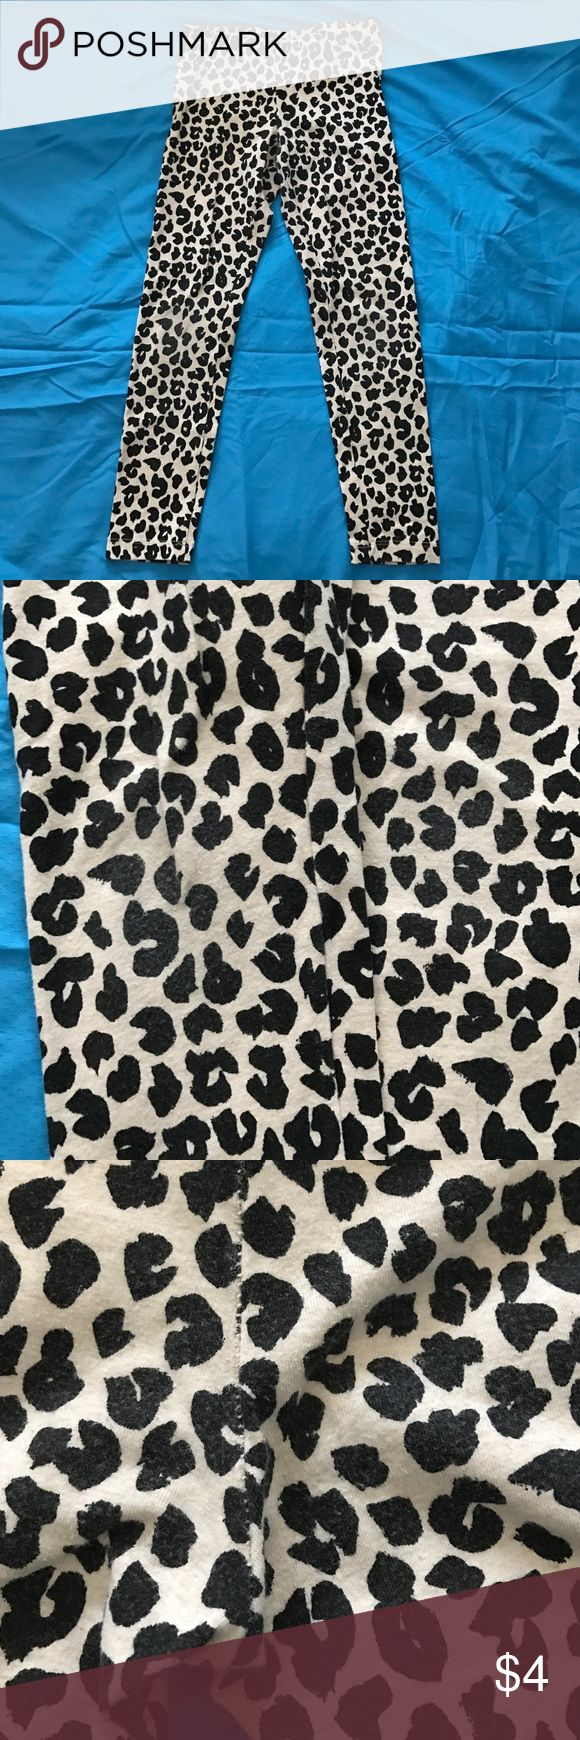 Cheetah Print Leggings Girls' cheetah print leggings by Cat & Jack. Size Small 6/6X. Some minor signs of wear on knees and seat of pants pictured above Bottoms Leggings